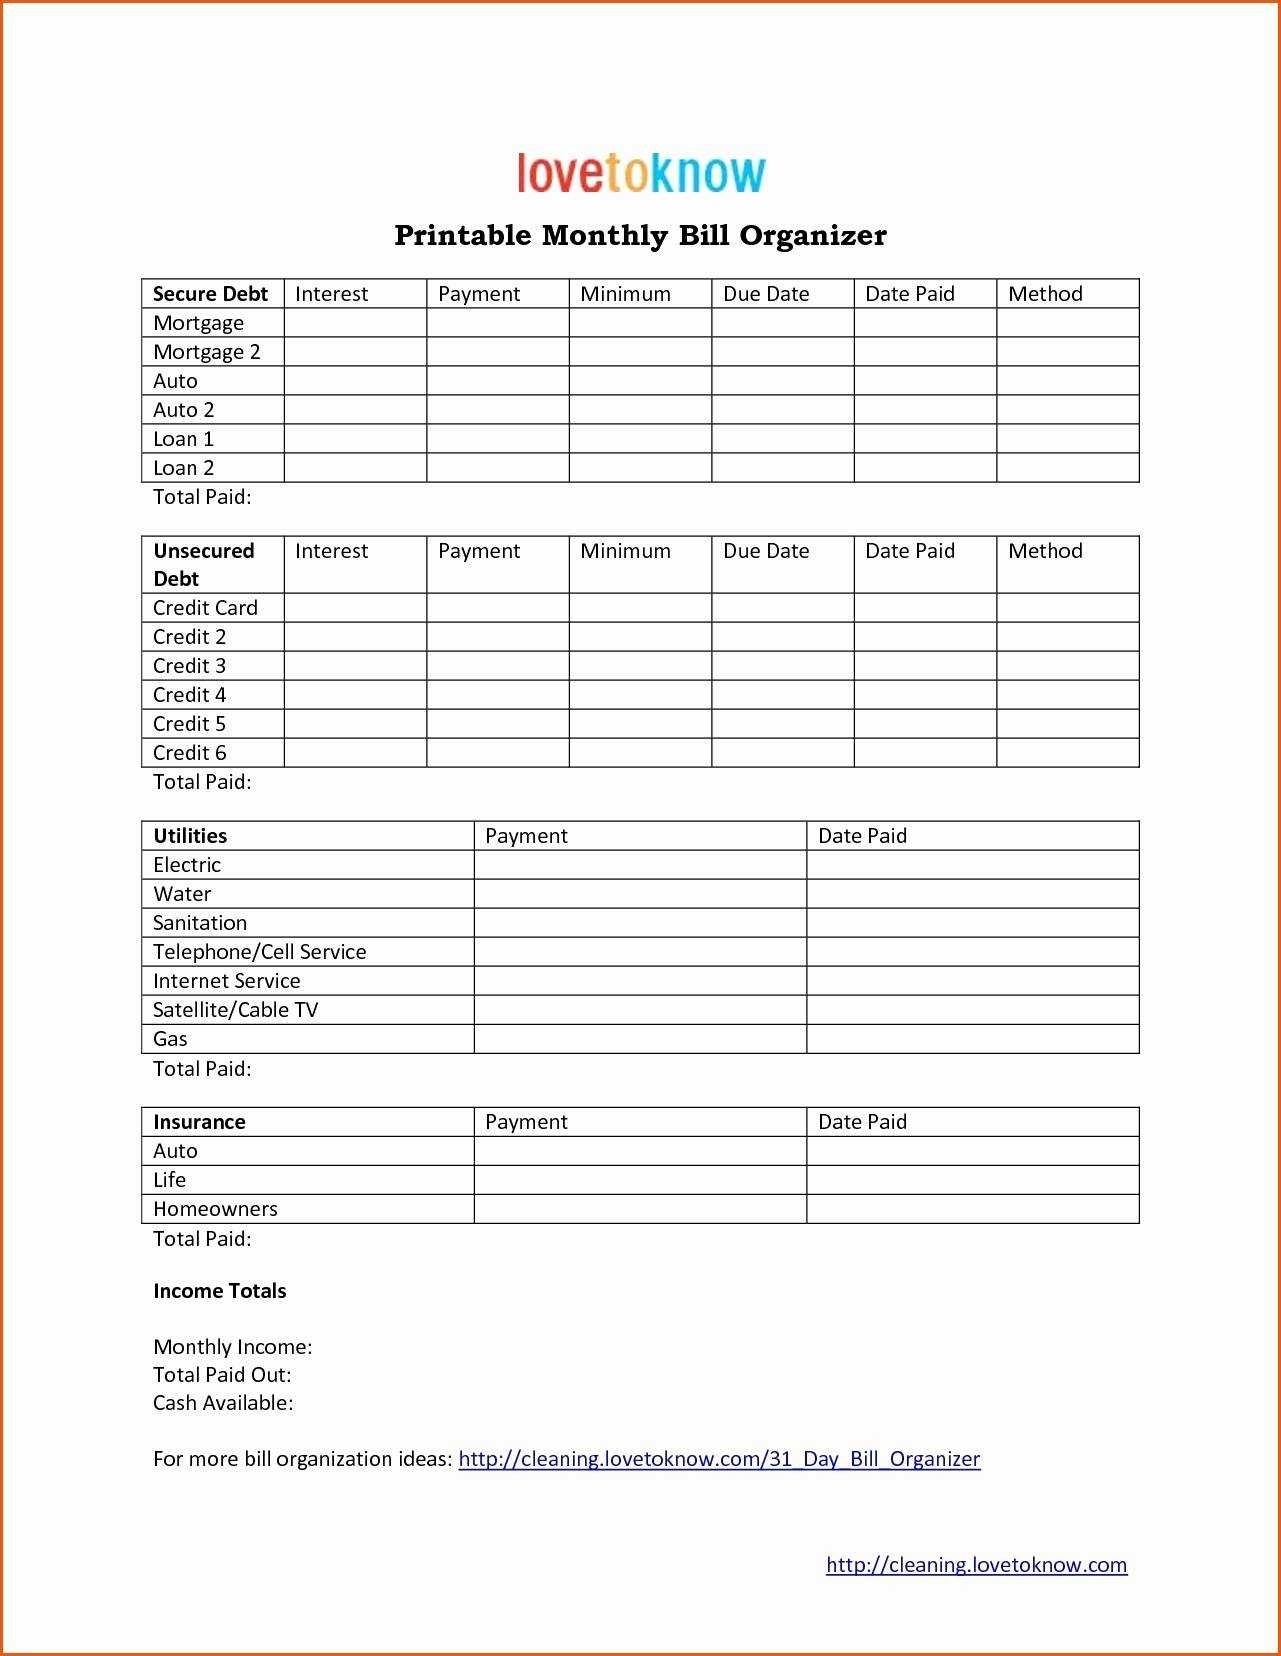 Monthly Profit And Loss Statement Template And Bill Pay Calendar regarding Monthly Calendars For Bill Paying